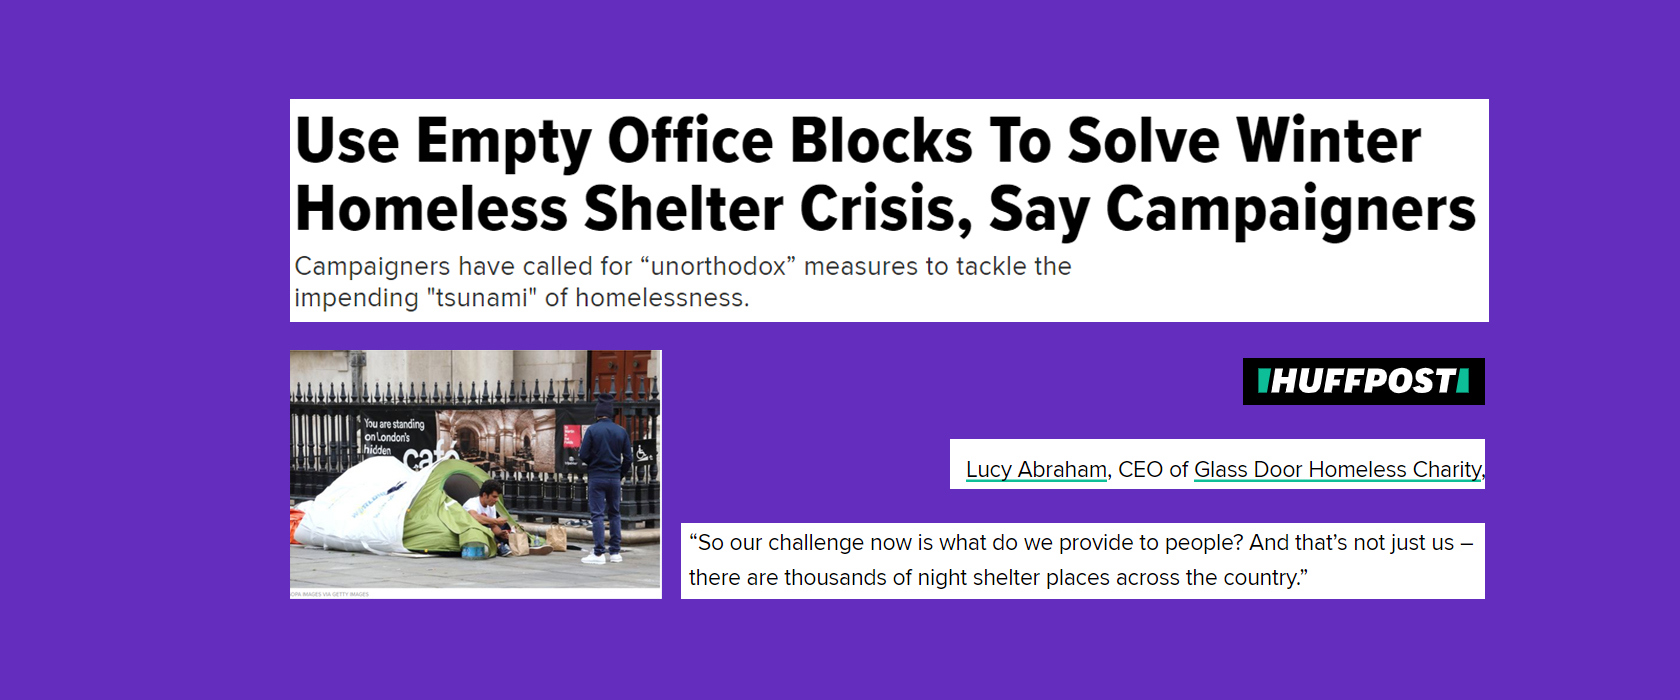 'Winter homeless shelter crisis' in Huffington Post